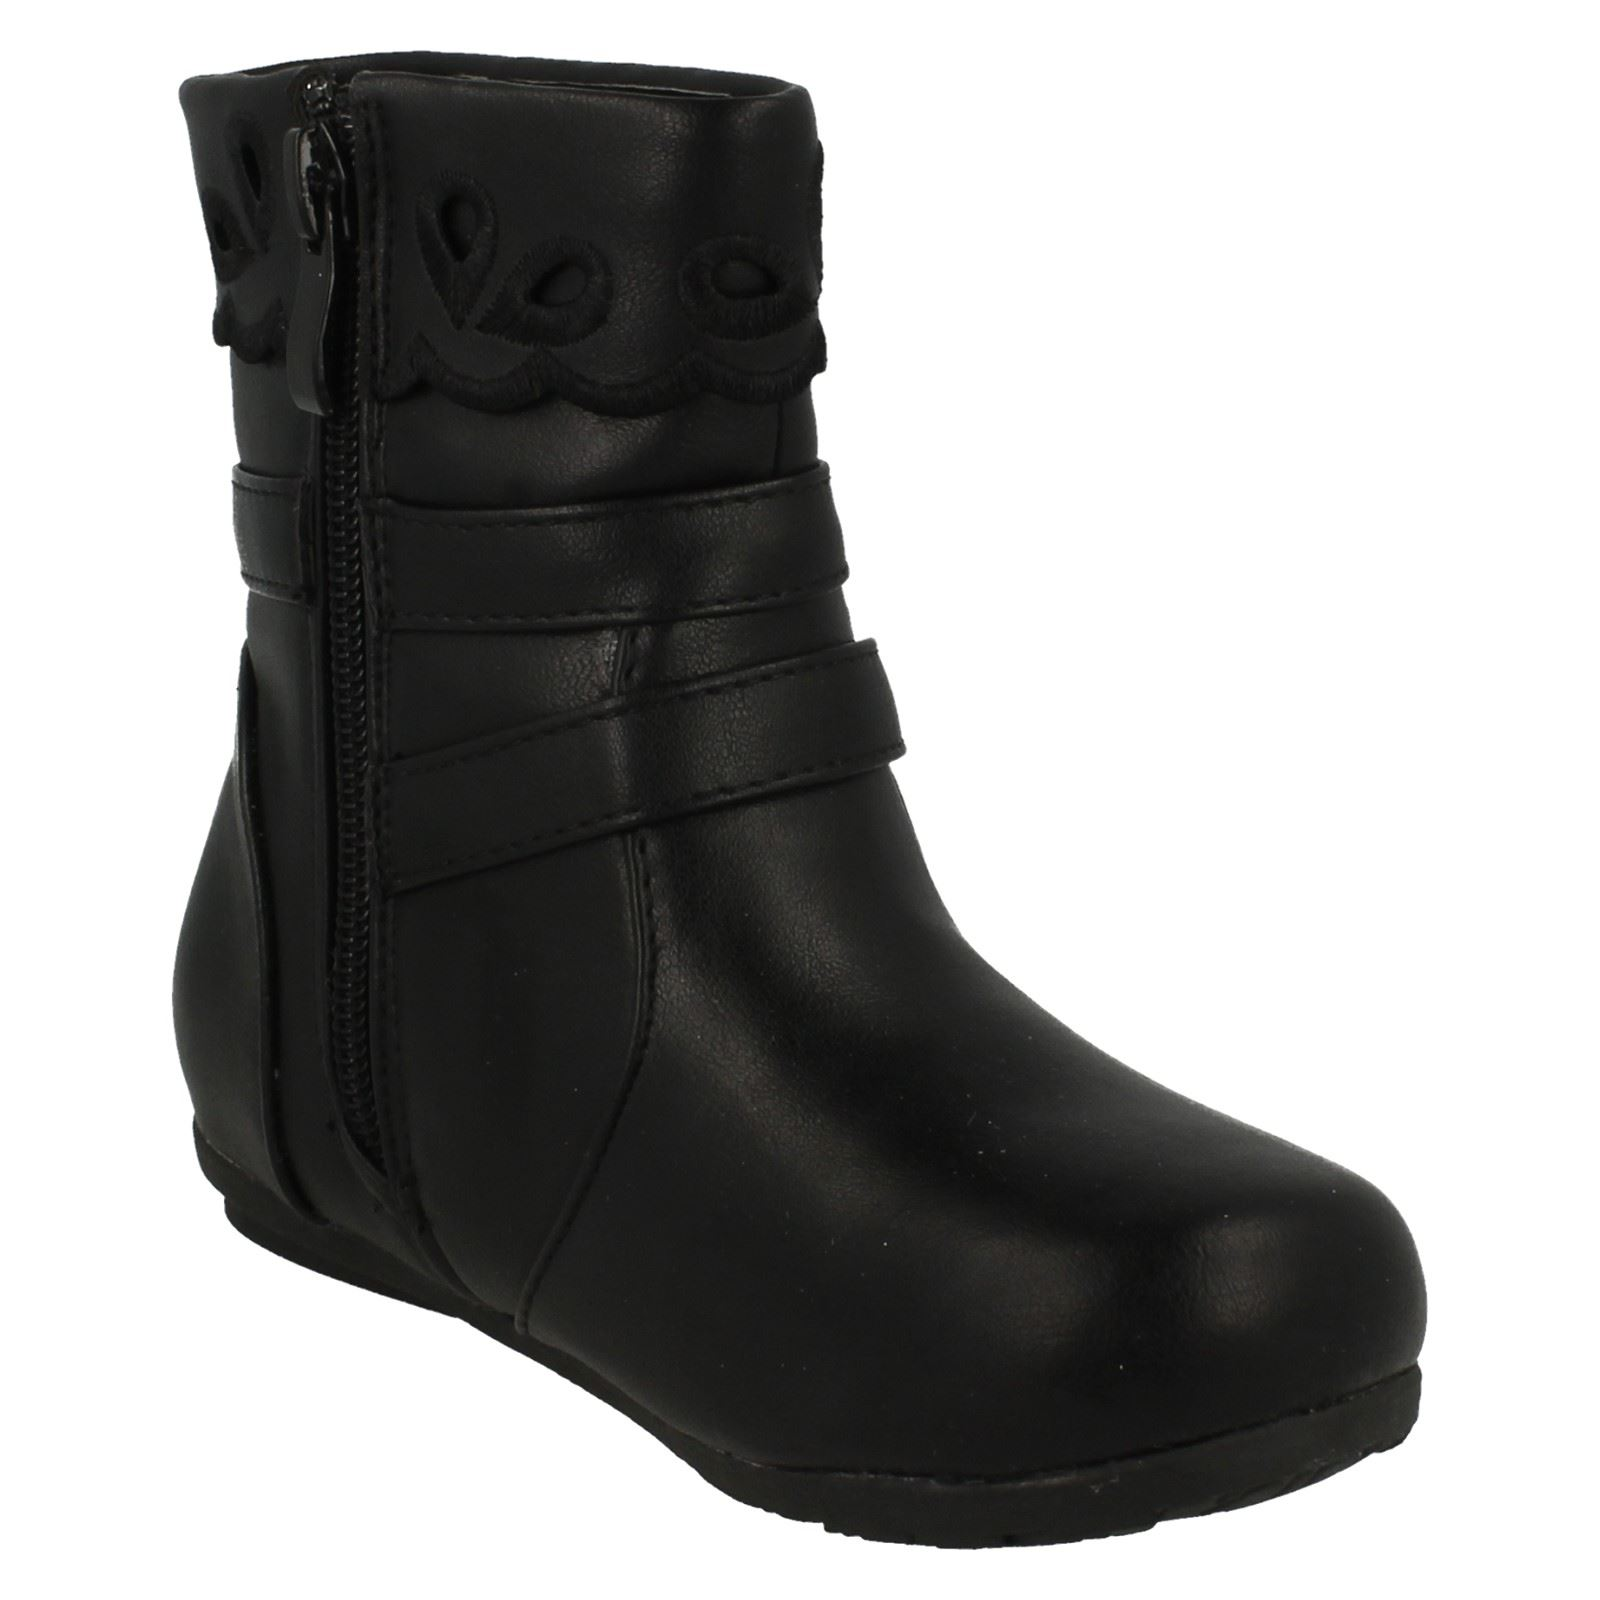 Girls Spot On Ankle Boots with Buckle Detail